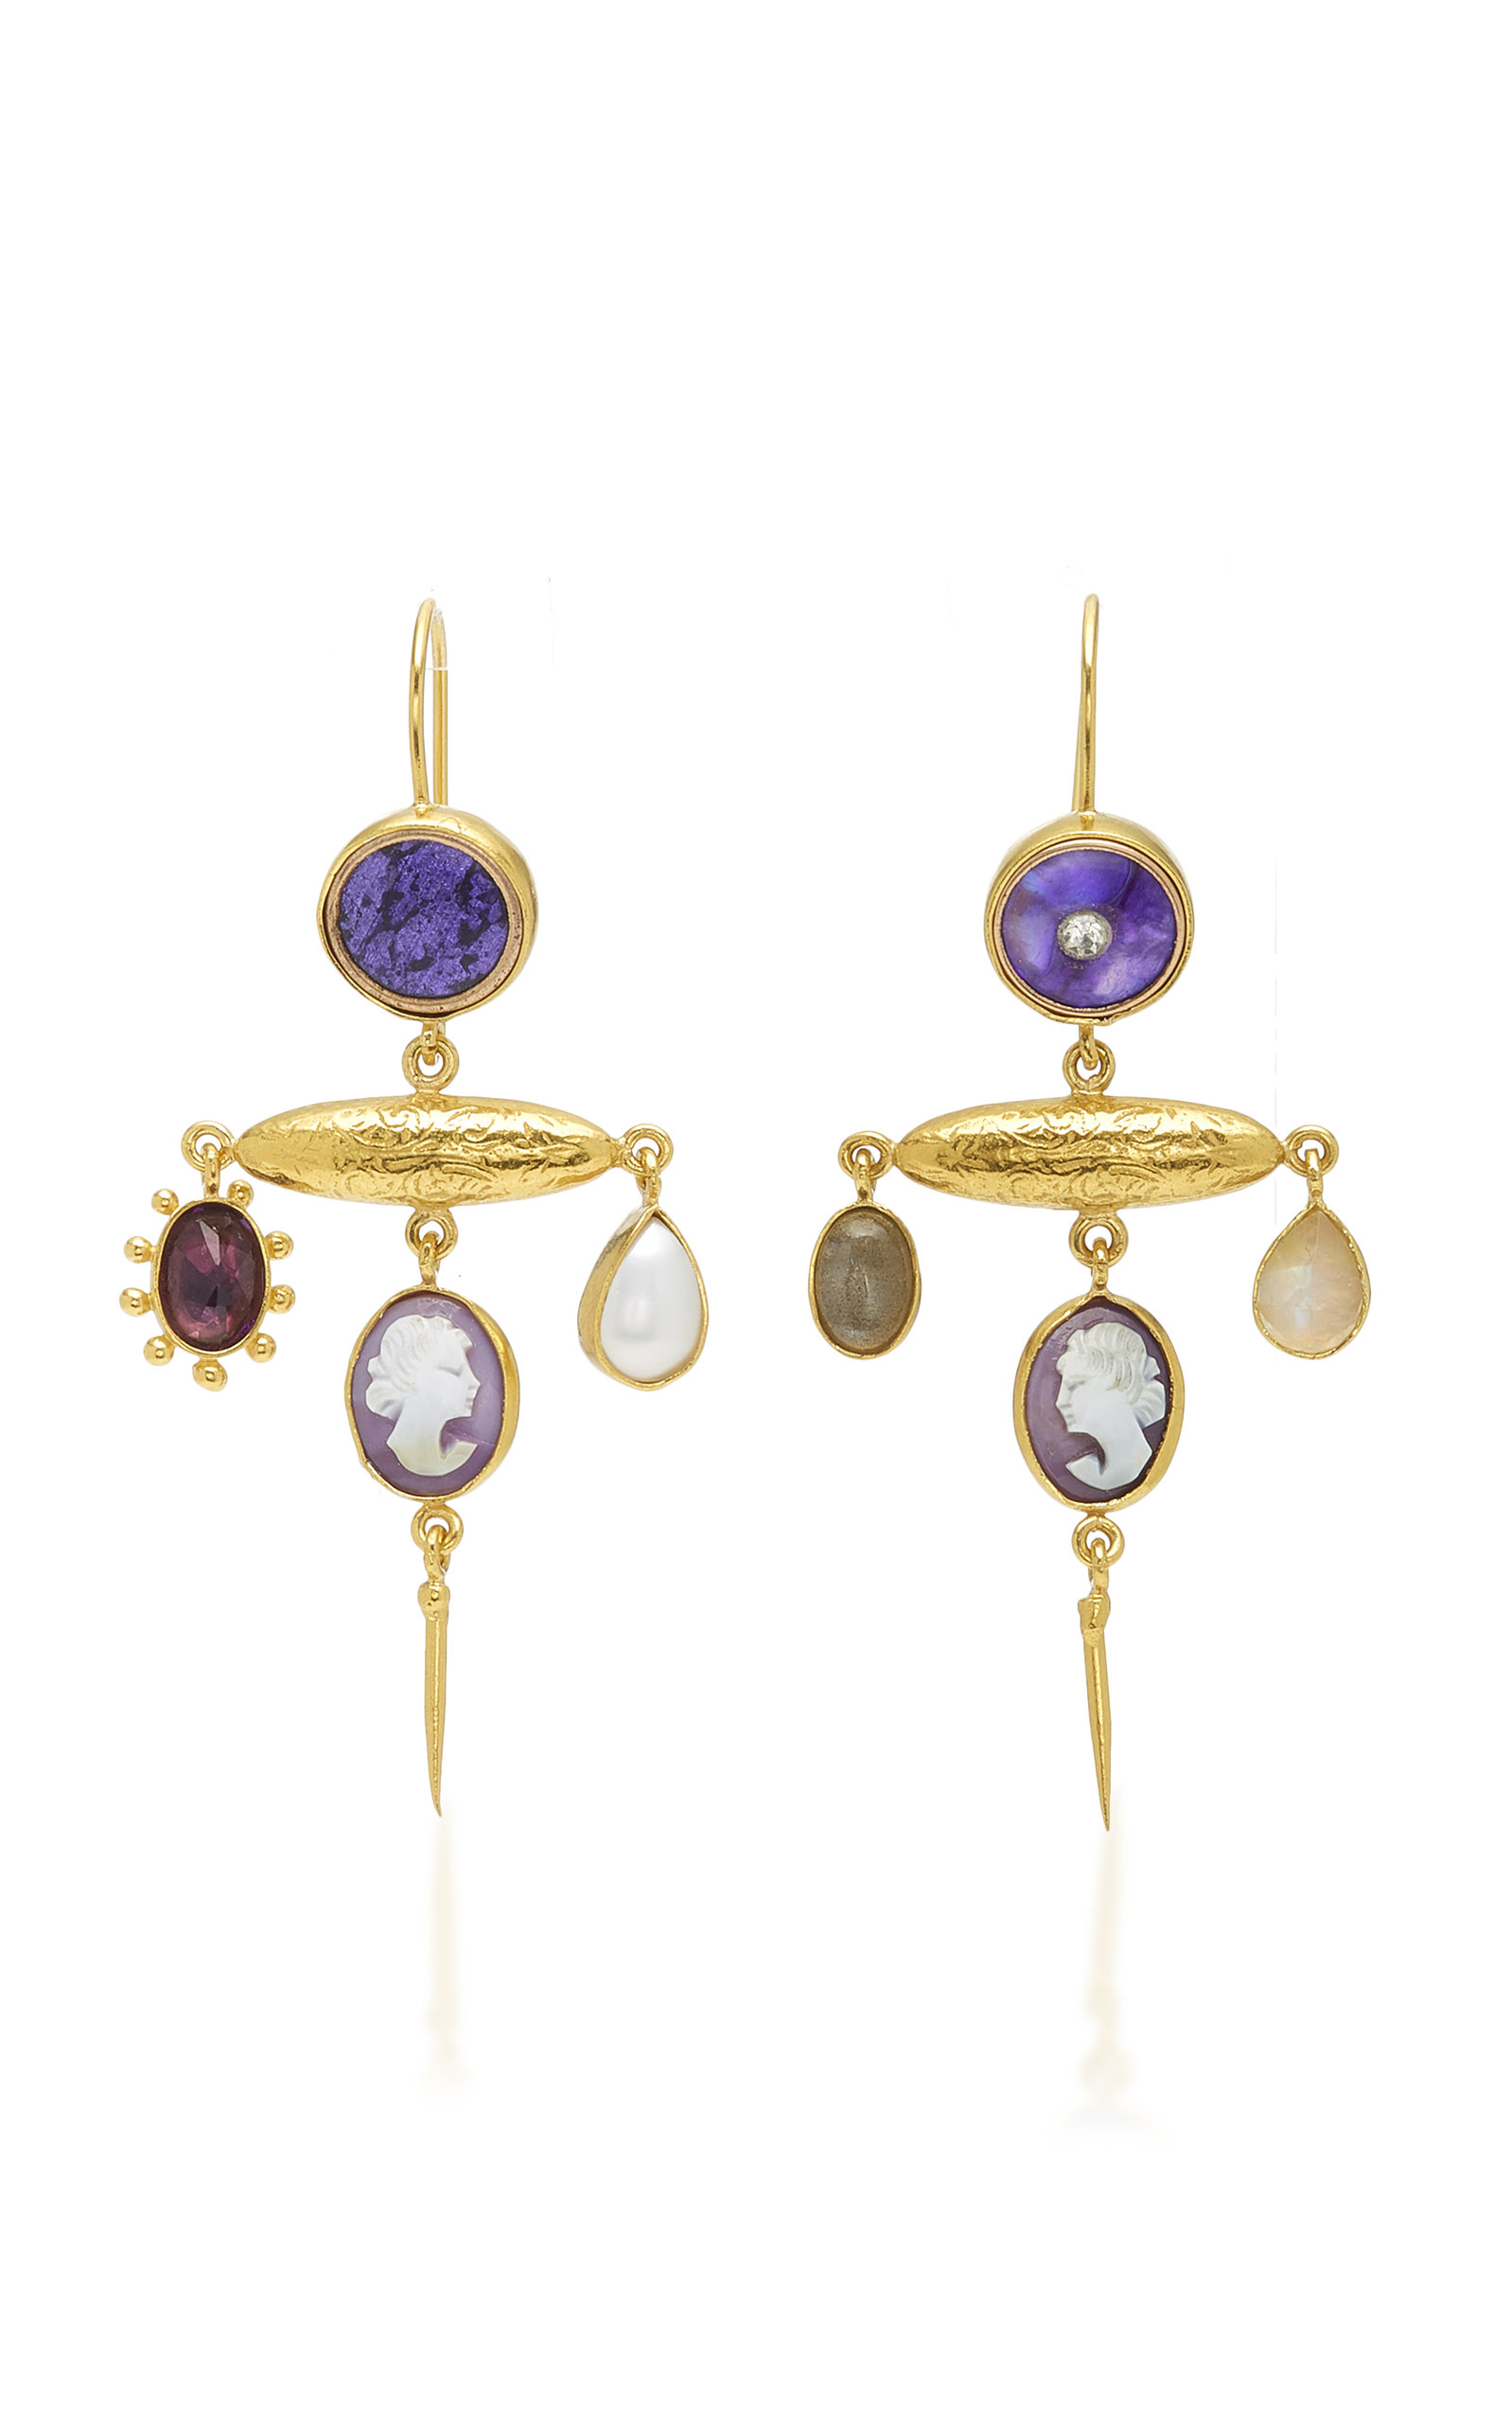 GRAINNE MORTON VICTORIAN AMETHYST PIN DROP EARRINGS